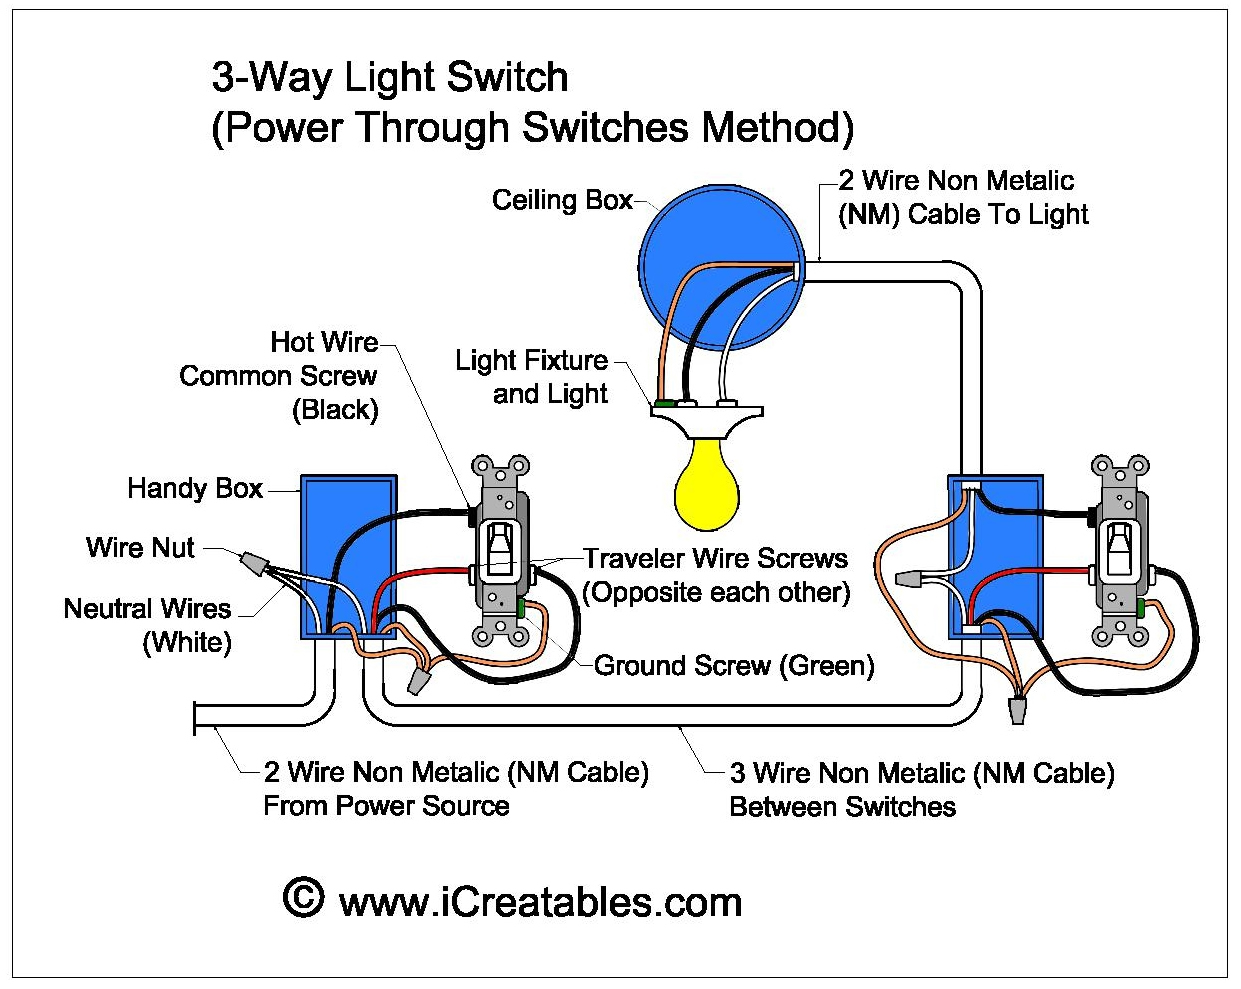 hight resolution of wiring diagram moreover wiring two light switches furthermore light wiring multiple single pole switches moreover wiring a dimmer switch